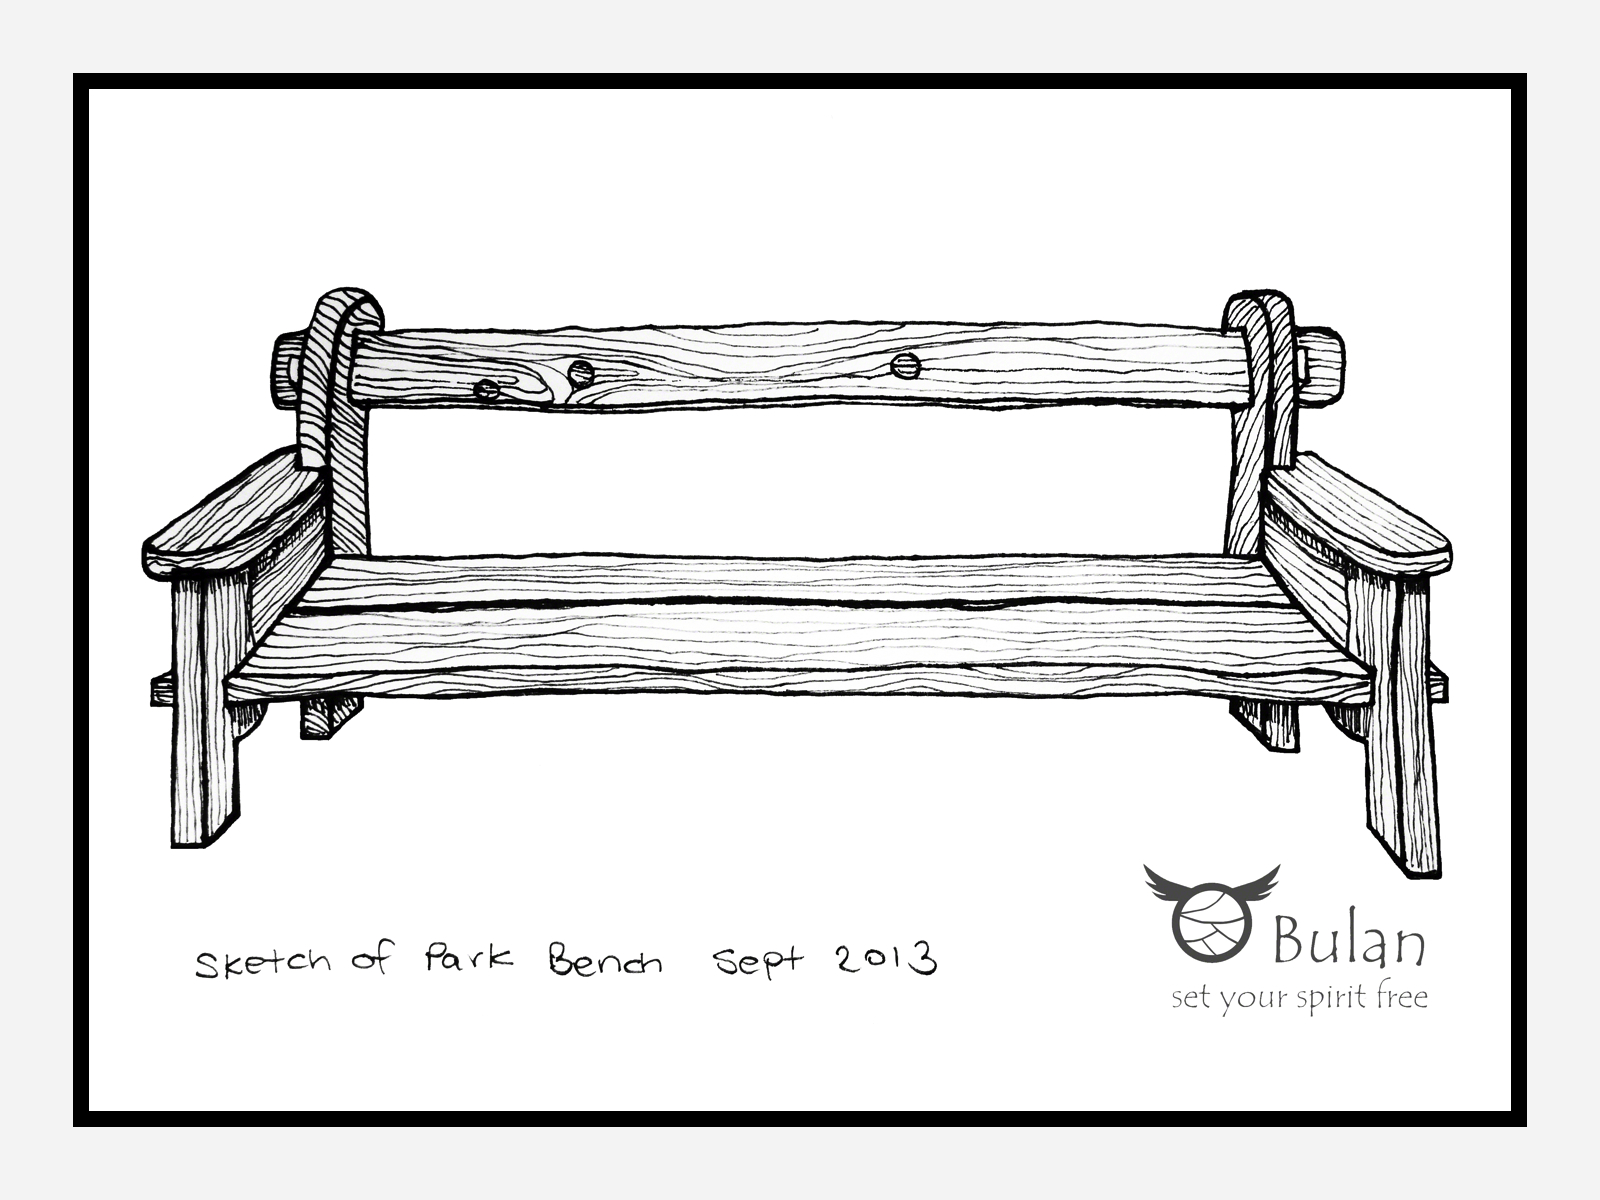 Sketch Of The Day No 135 Park Bench Bulanlifestylecom